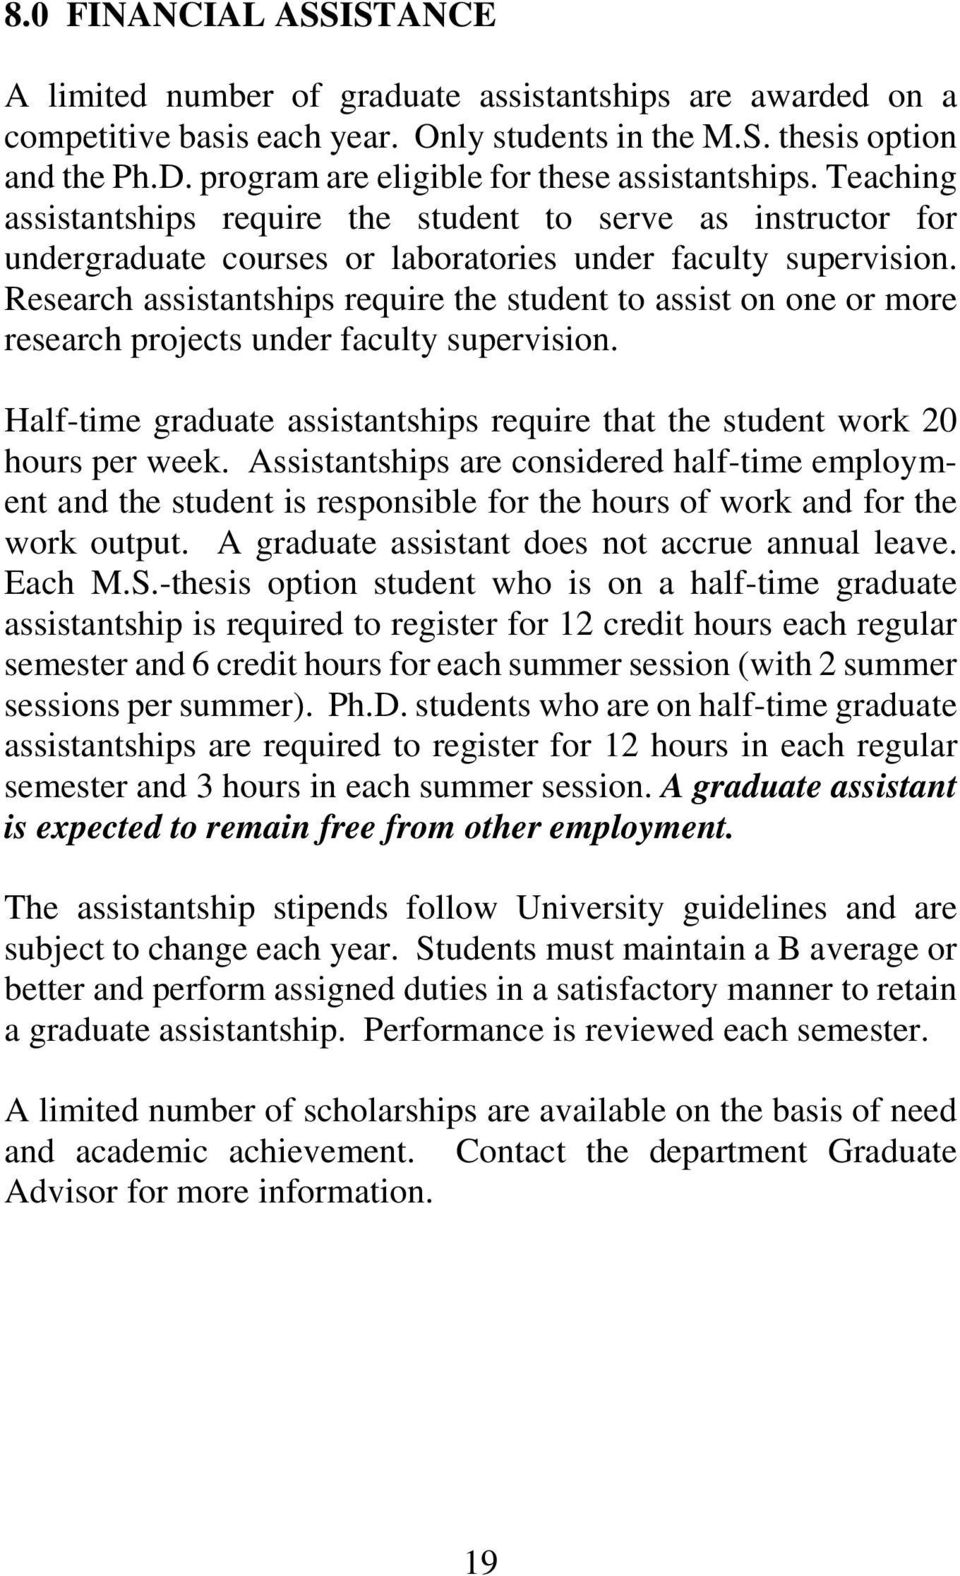 Research assistantships require the student to assist on one or more research projects under faculty supervision. Half-time graduate assistantships require that the student work 20 hours per week.